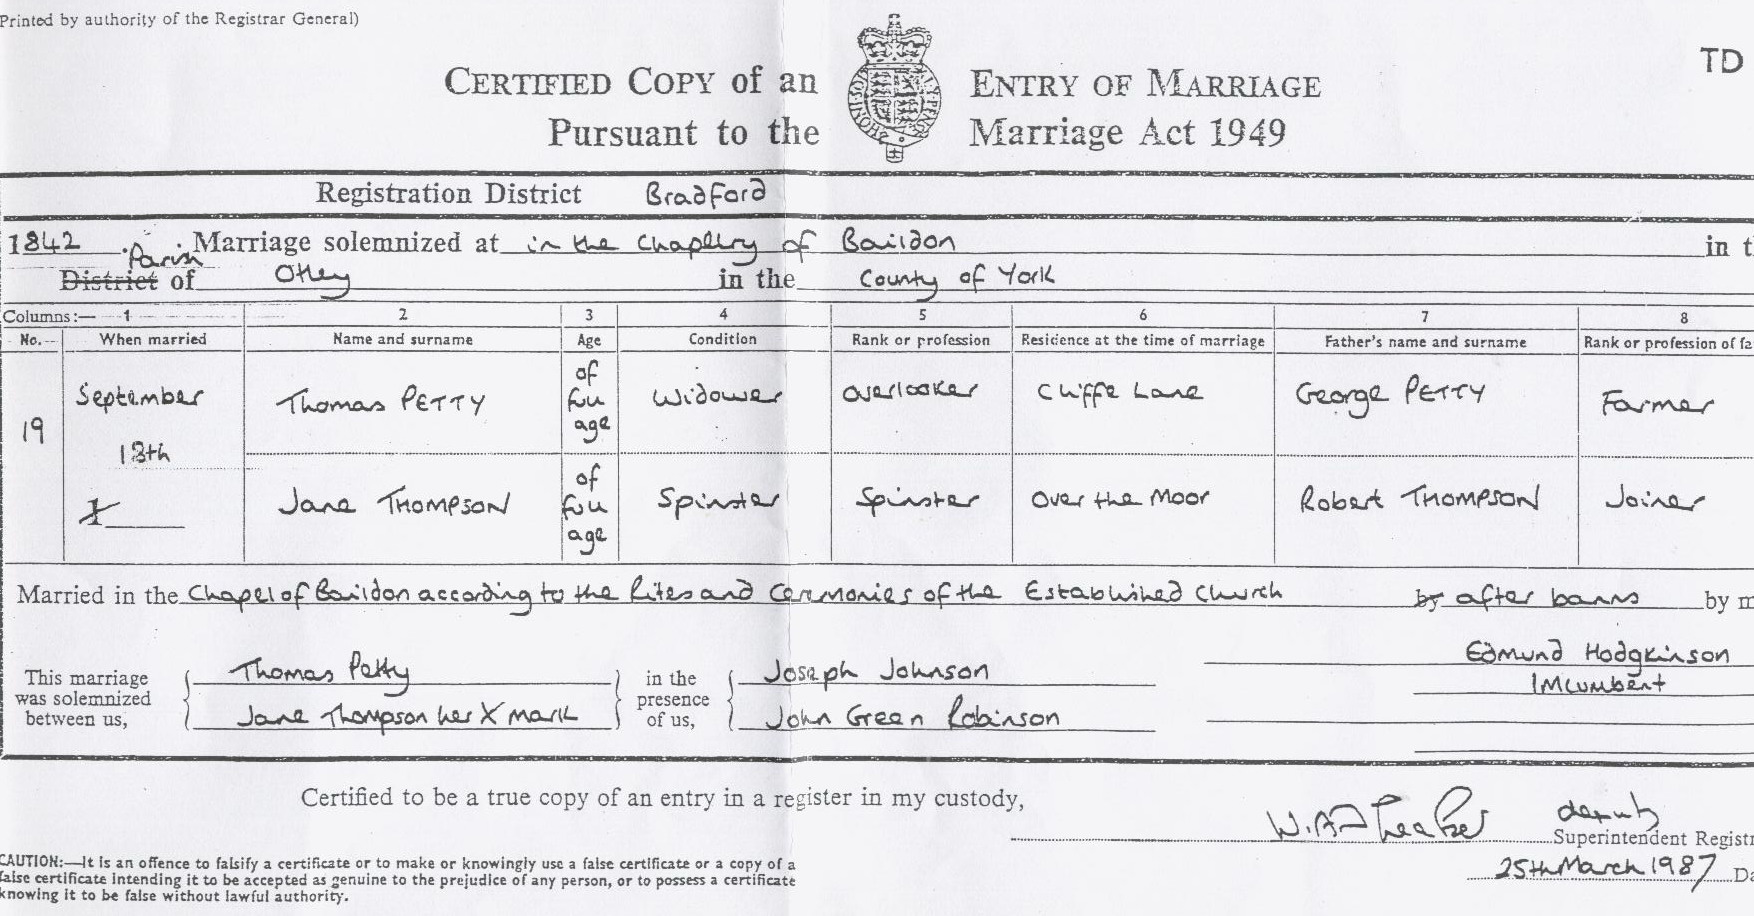 Thomas Petty and Jane Thompson marriage certificate